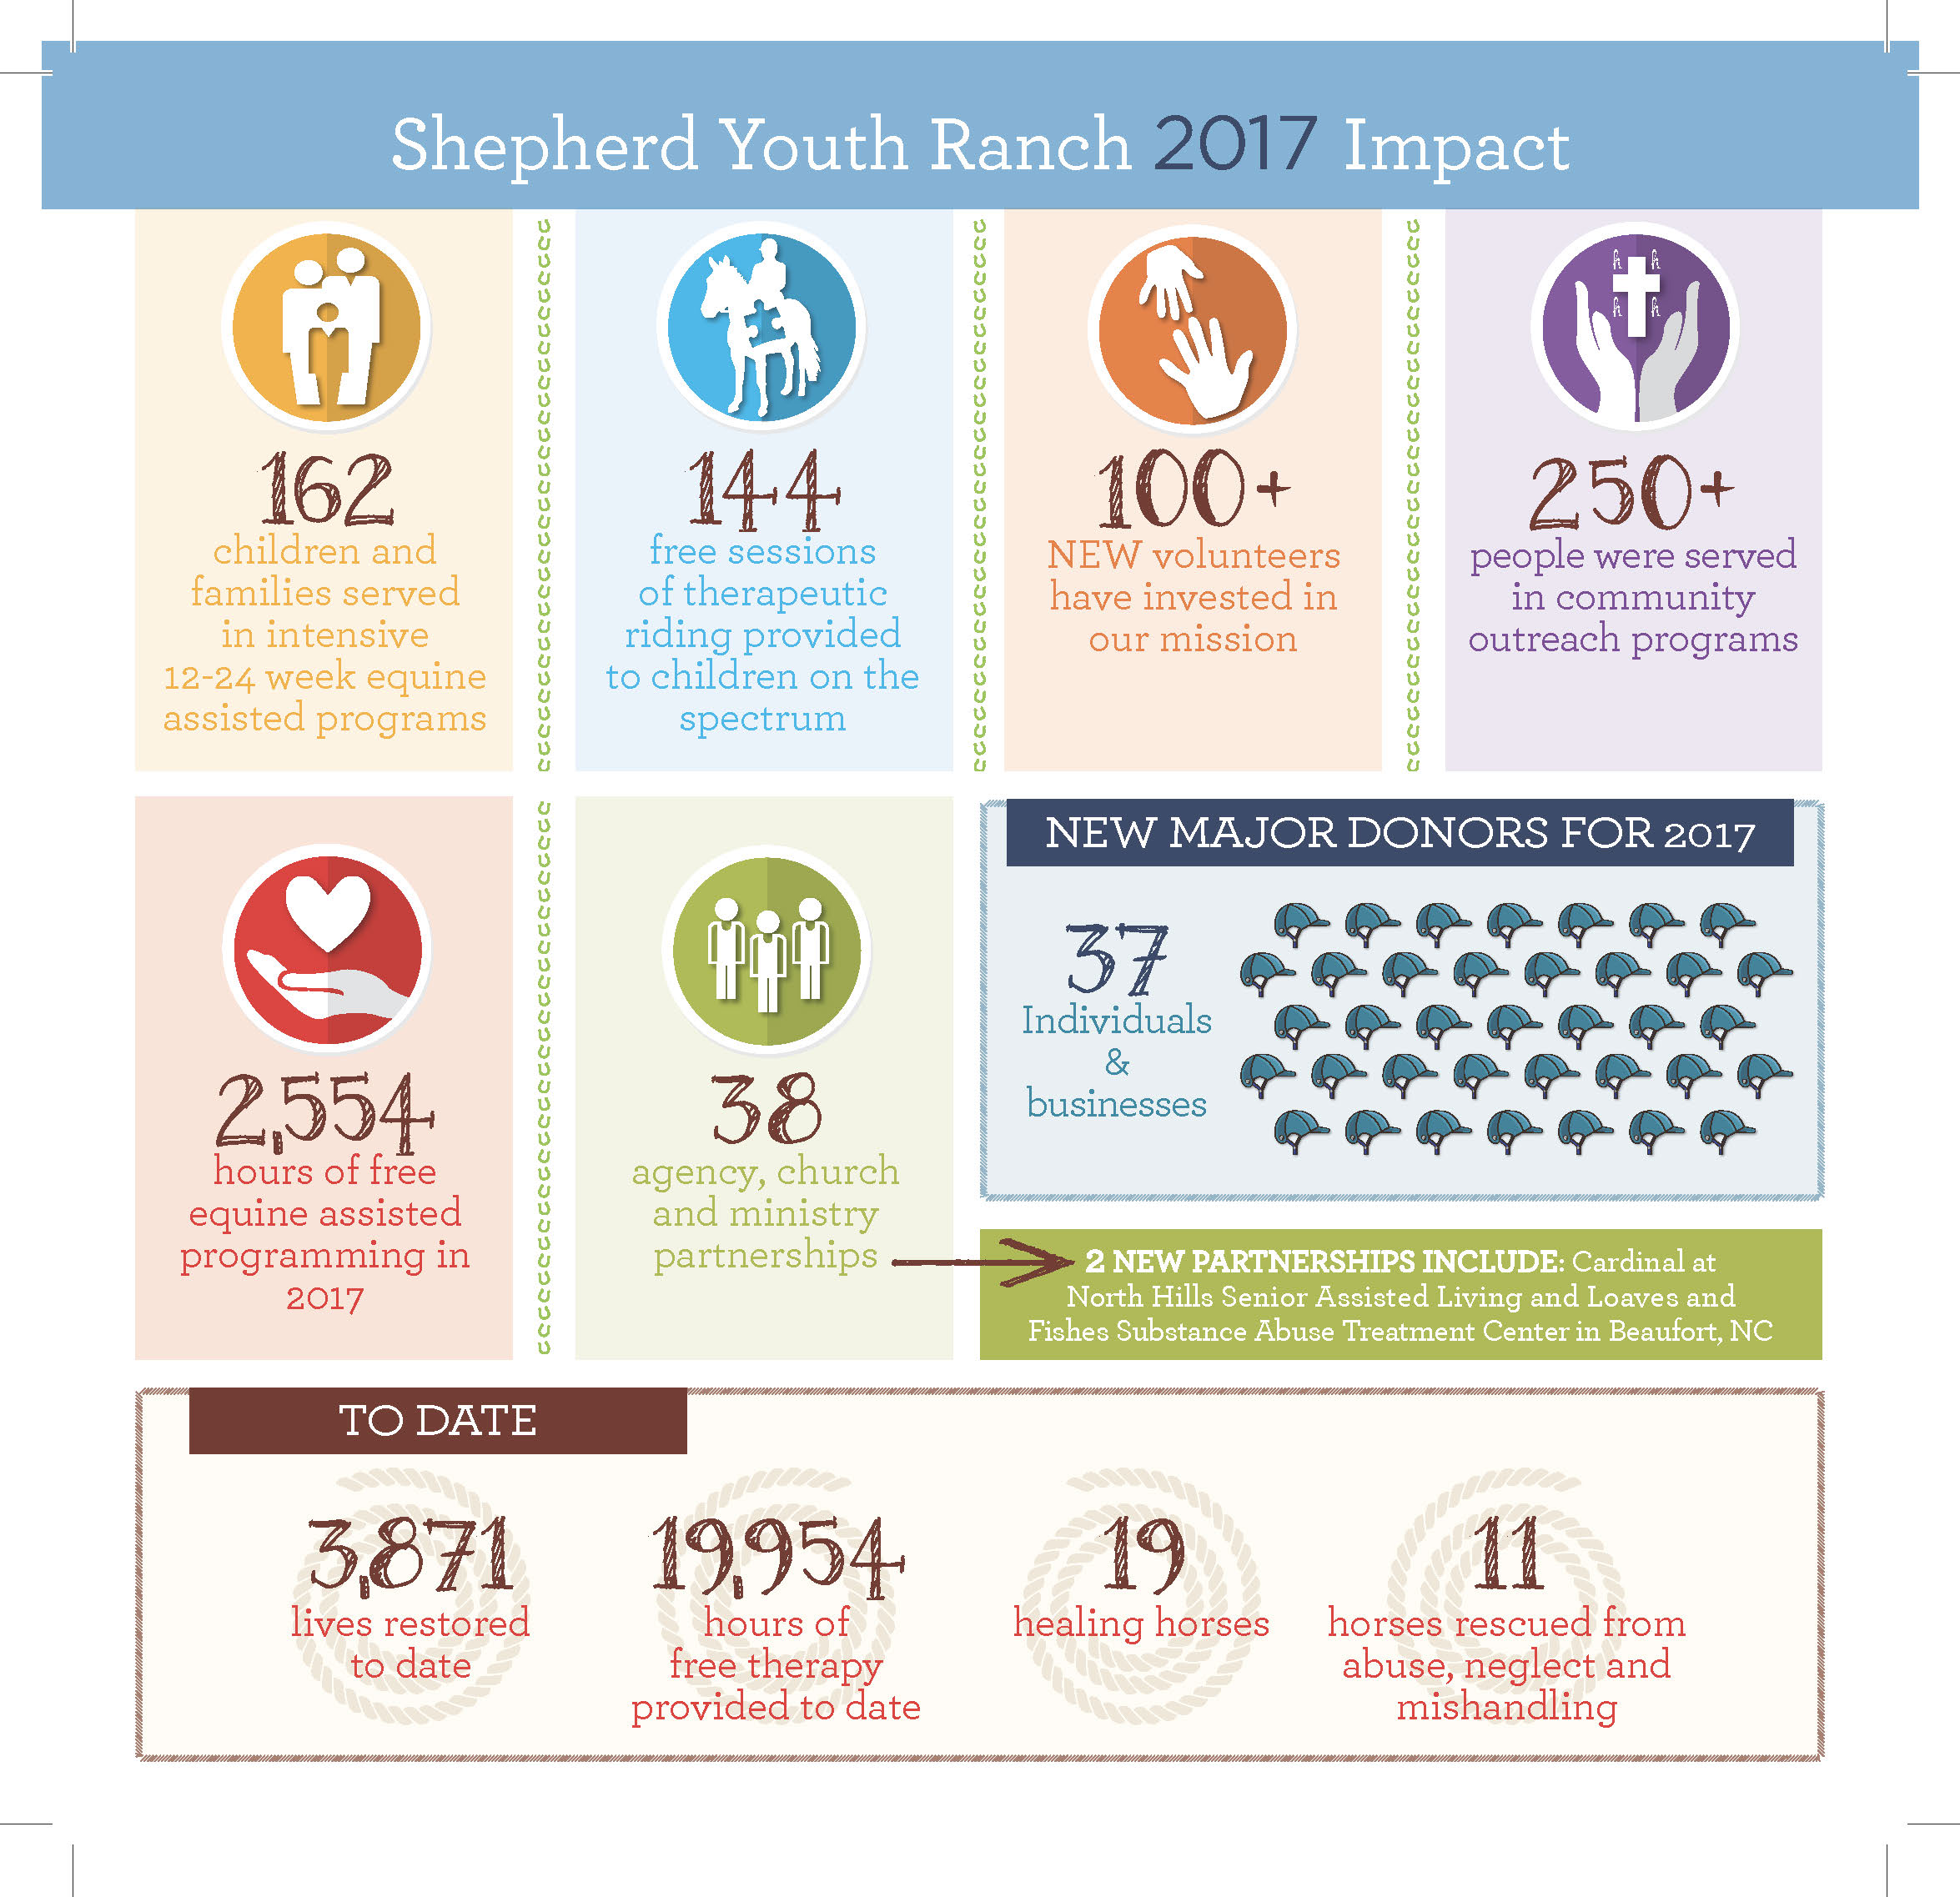 SYR 2017 Impact_Page_2